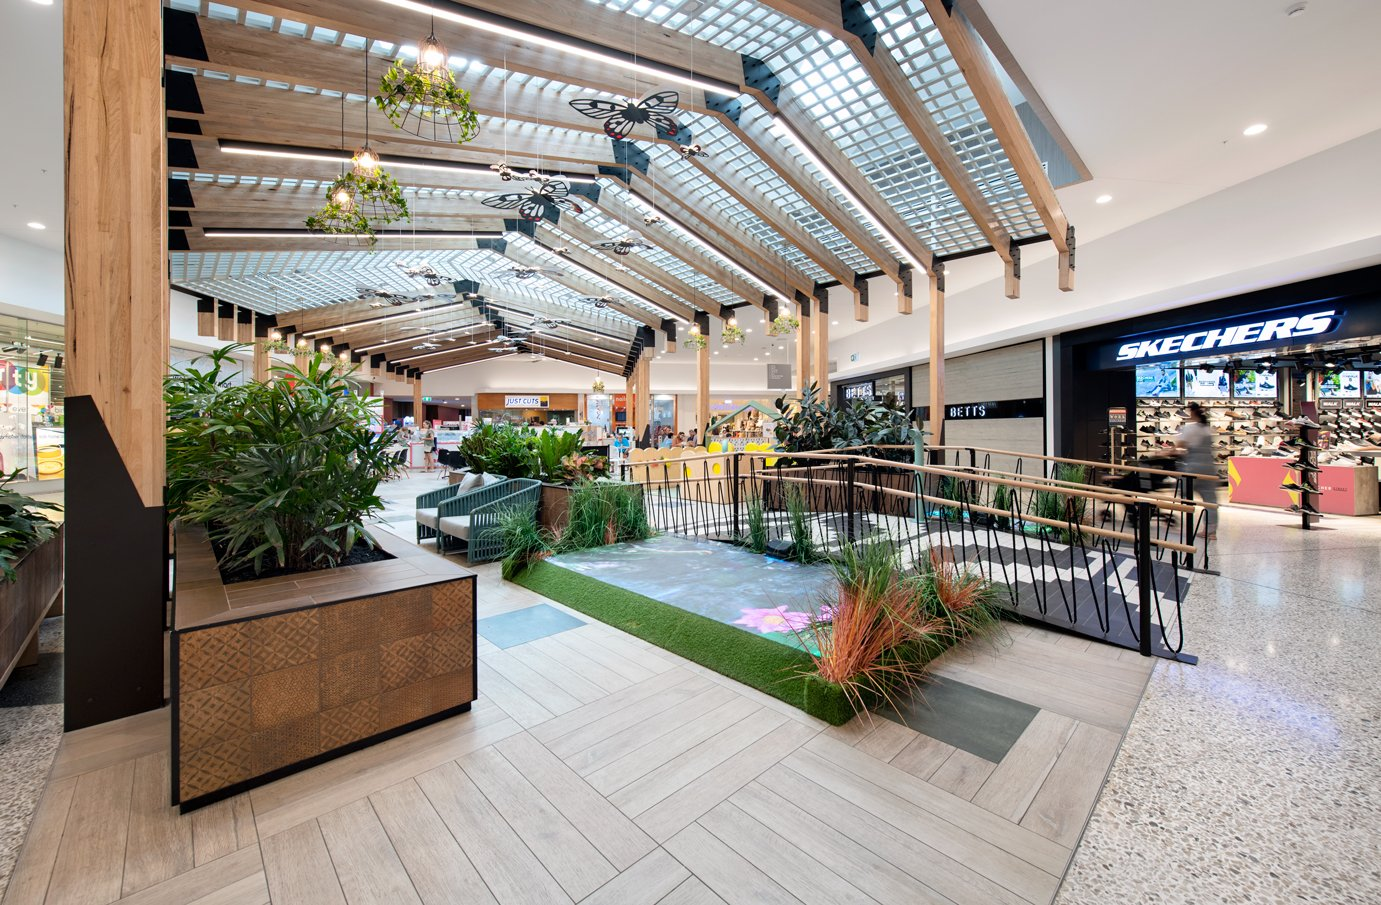 Casuarina Shopping Centre, Darwin, Northern Territory - A Retail & Town Centres project for GPT Group by Hames Sharley